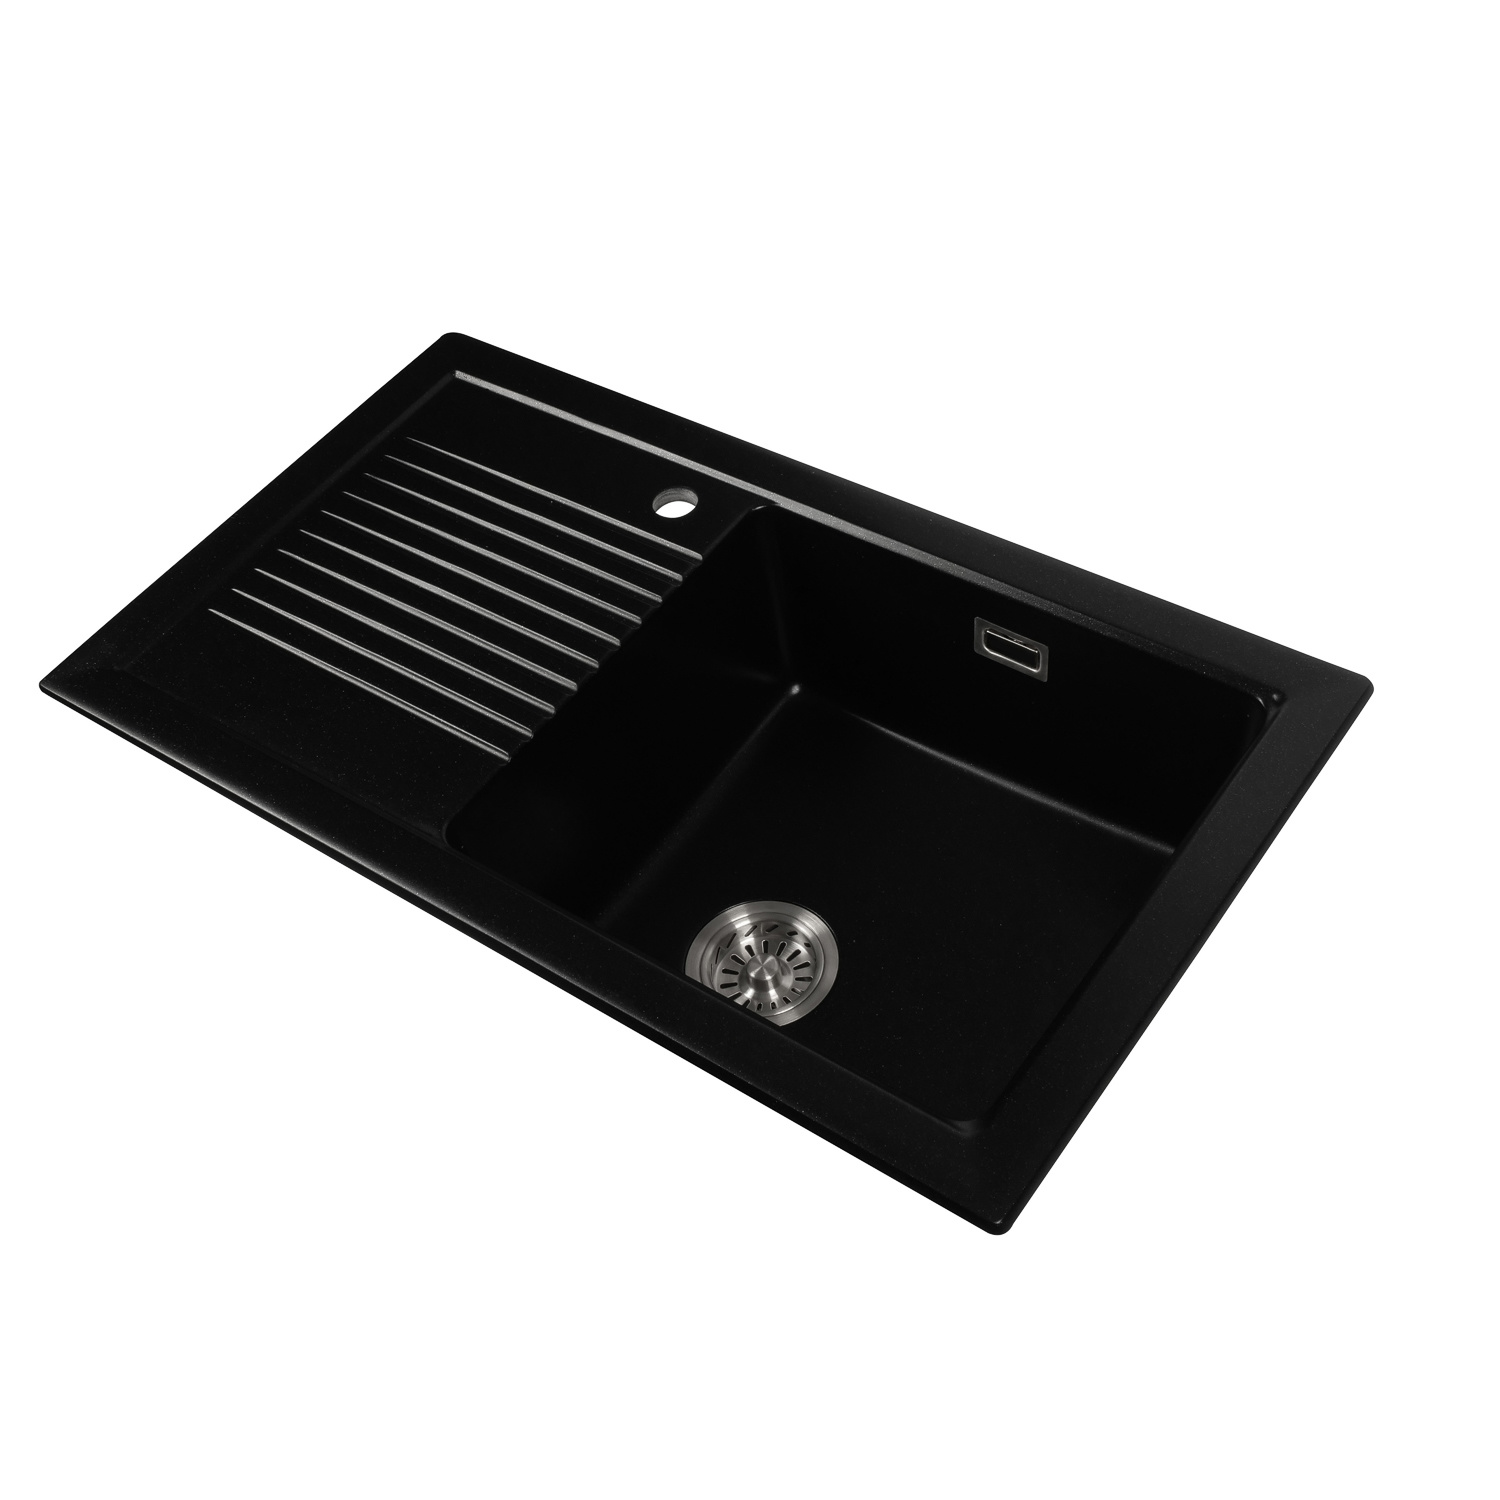 China Jm303 Stone Kitchen Sink With Drainboard To Place Wine Cup